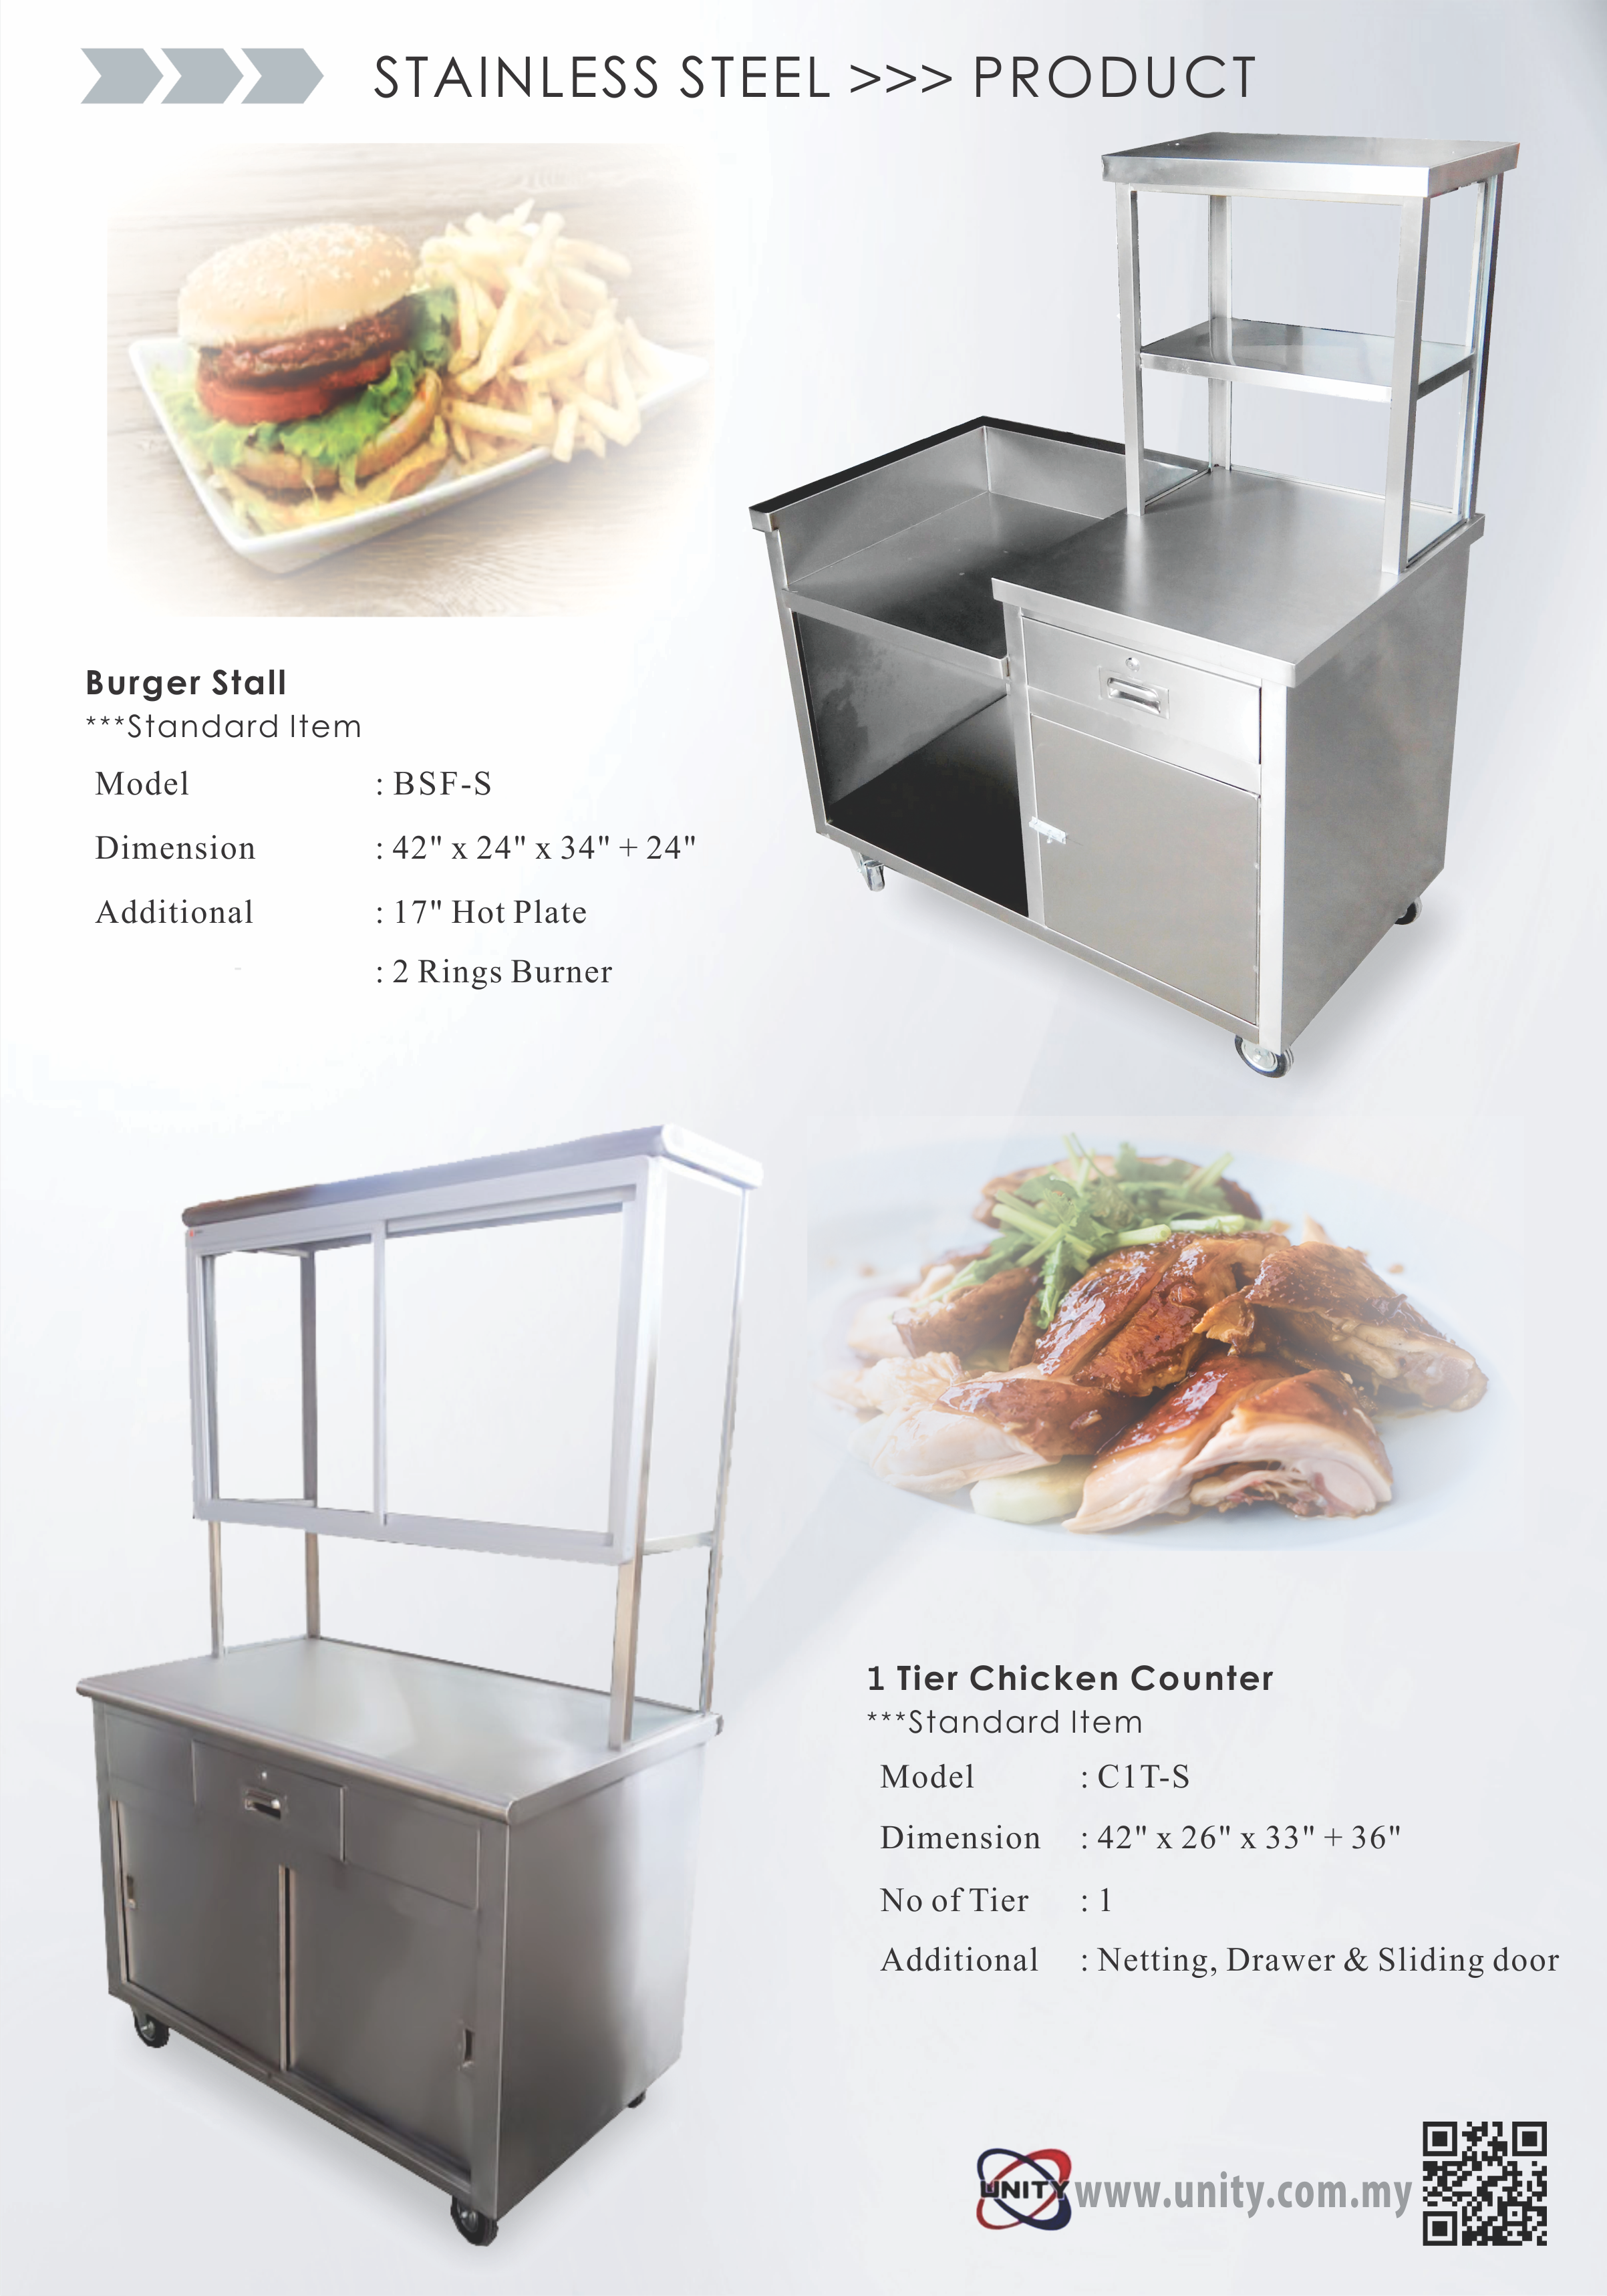 Burger Stall & Chicken Counter